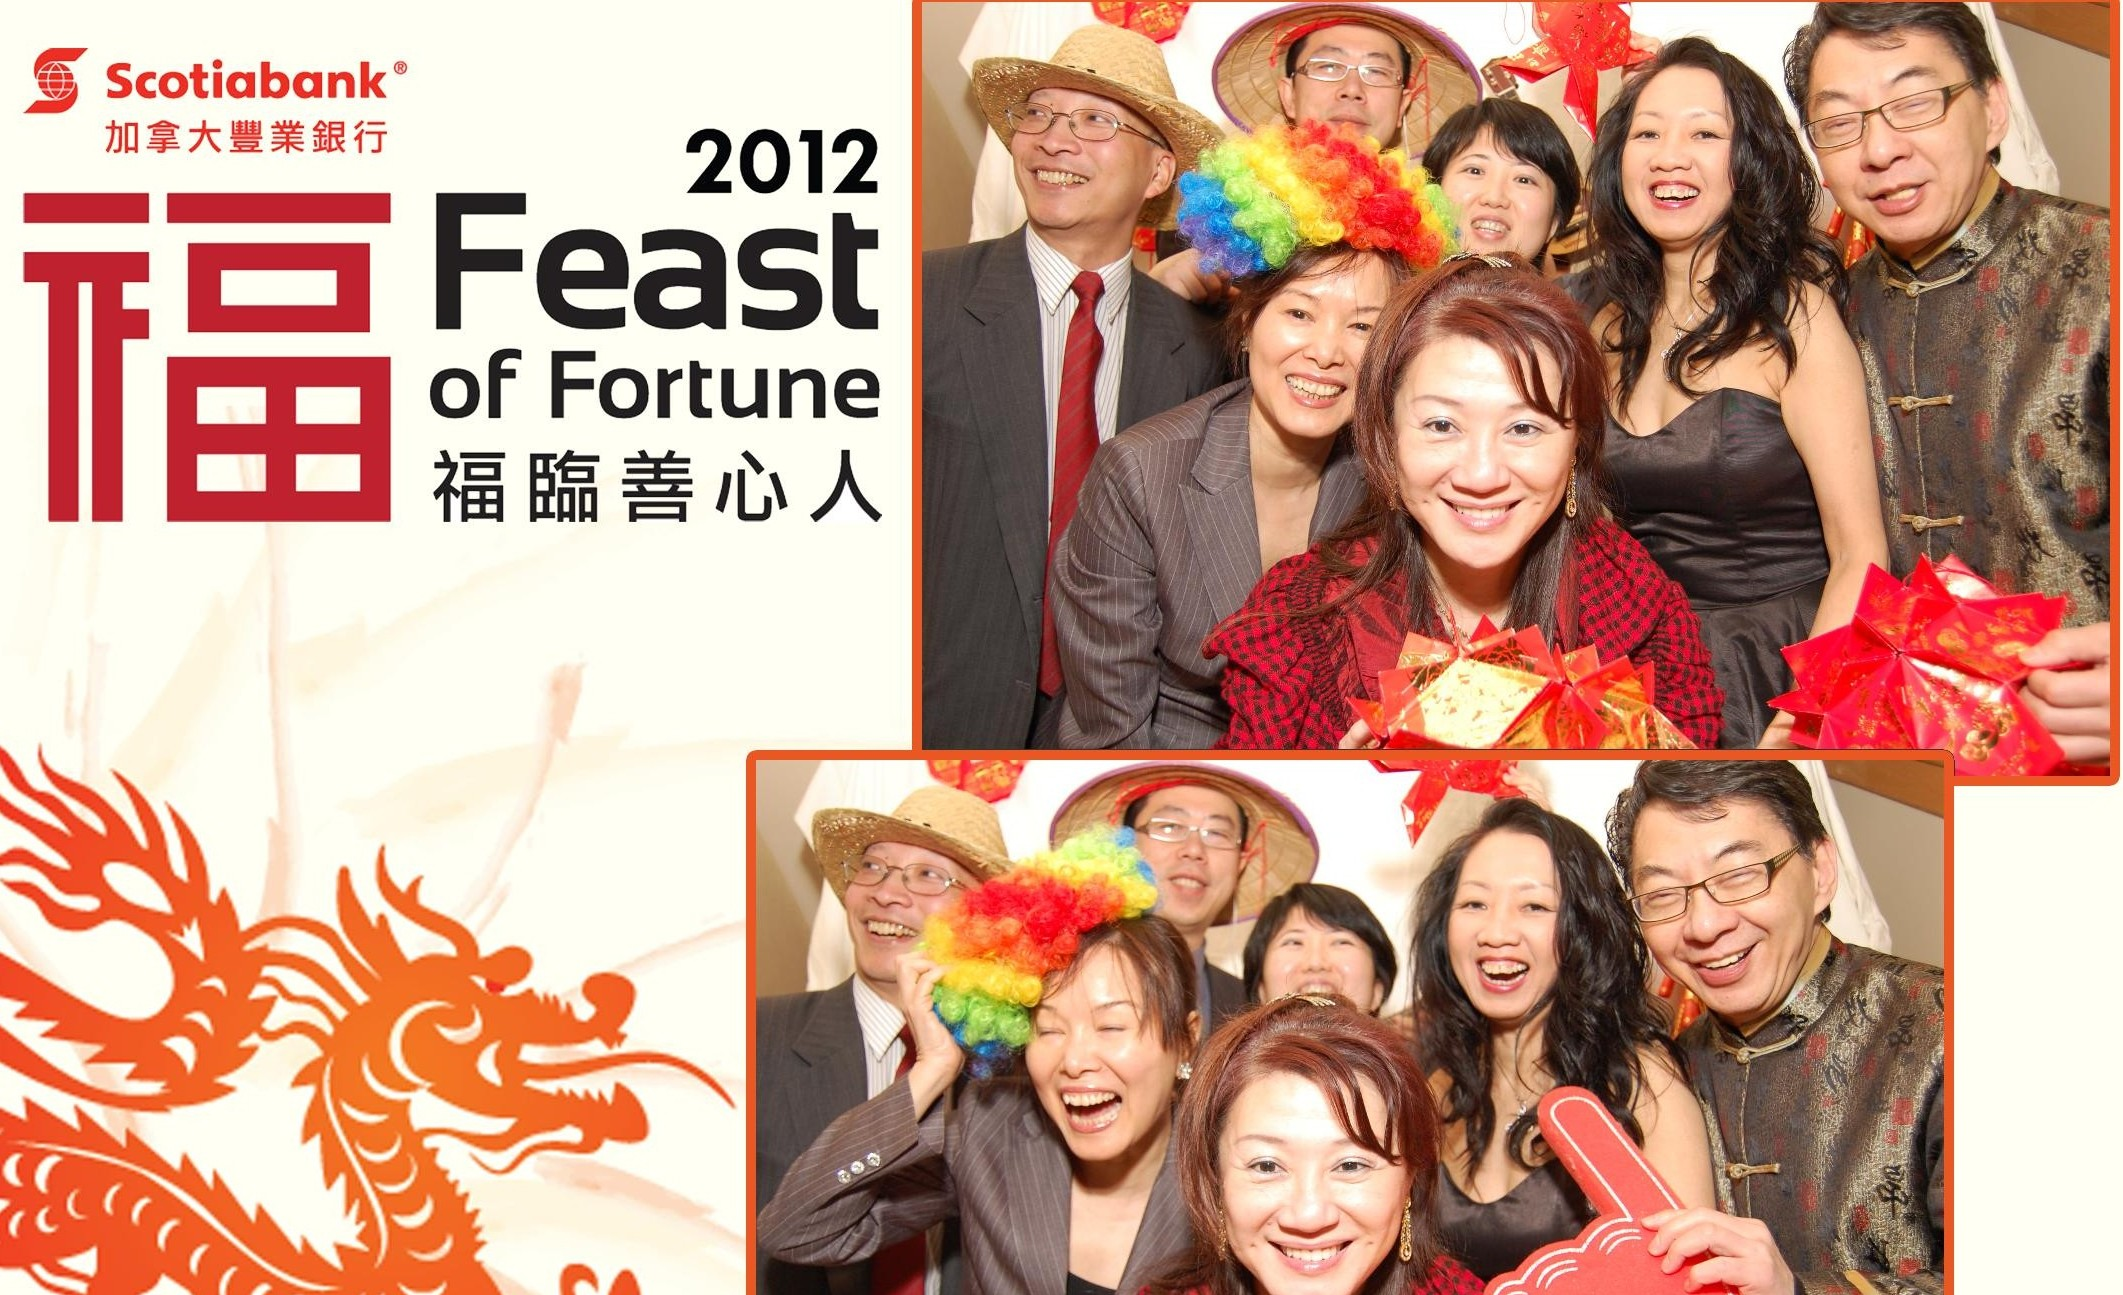 January 27, 2012 Feast of Fortune